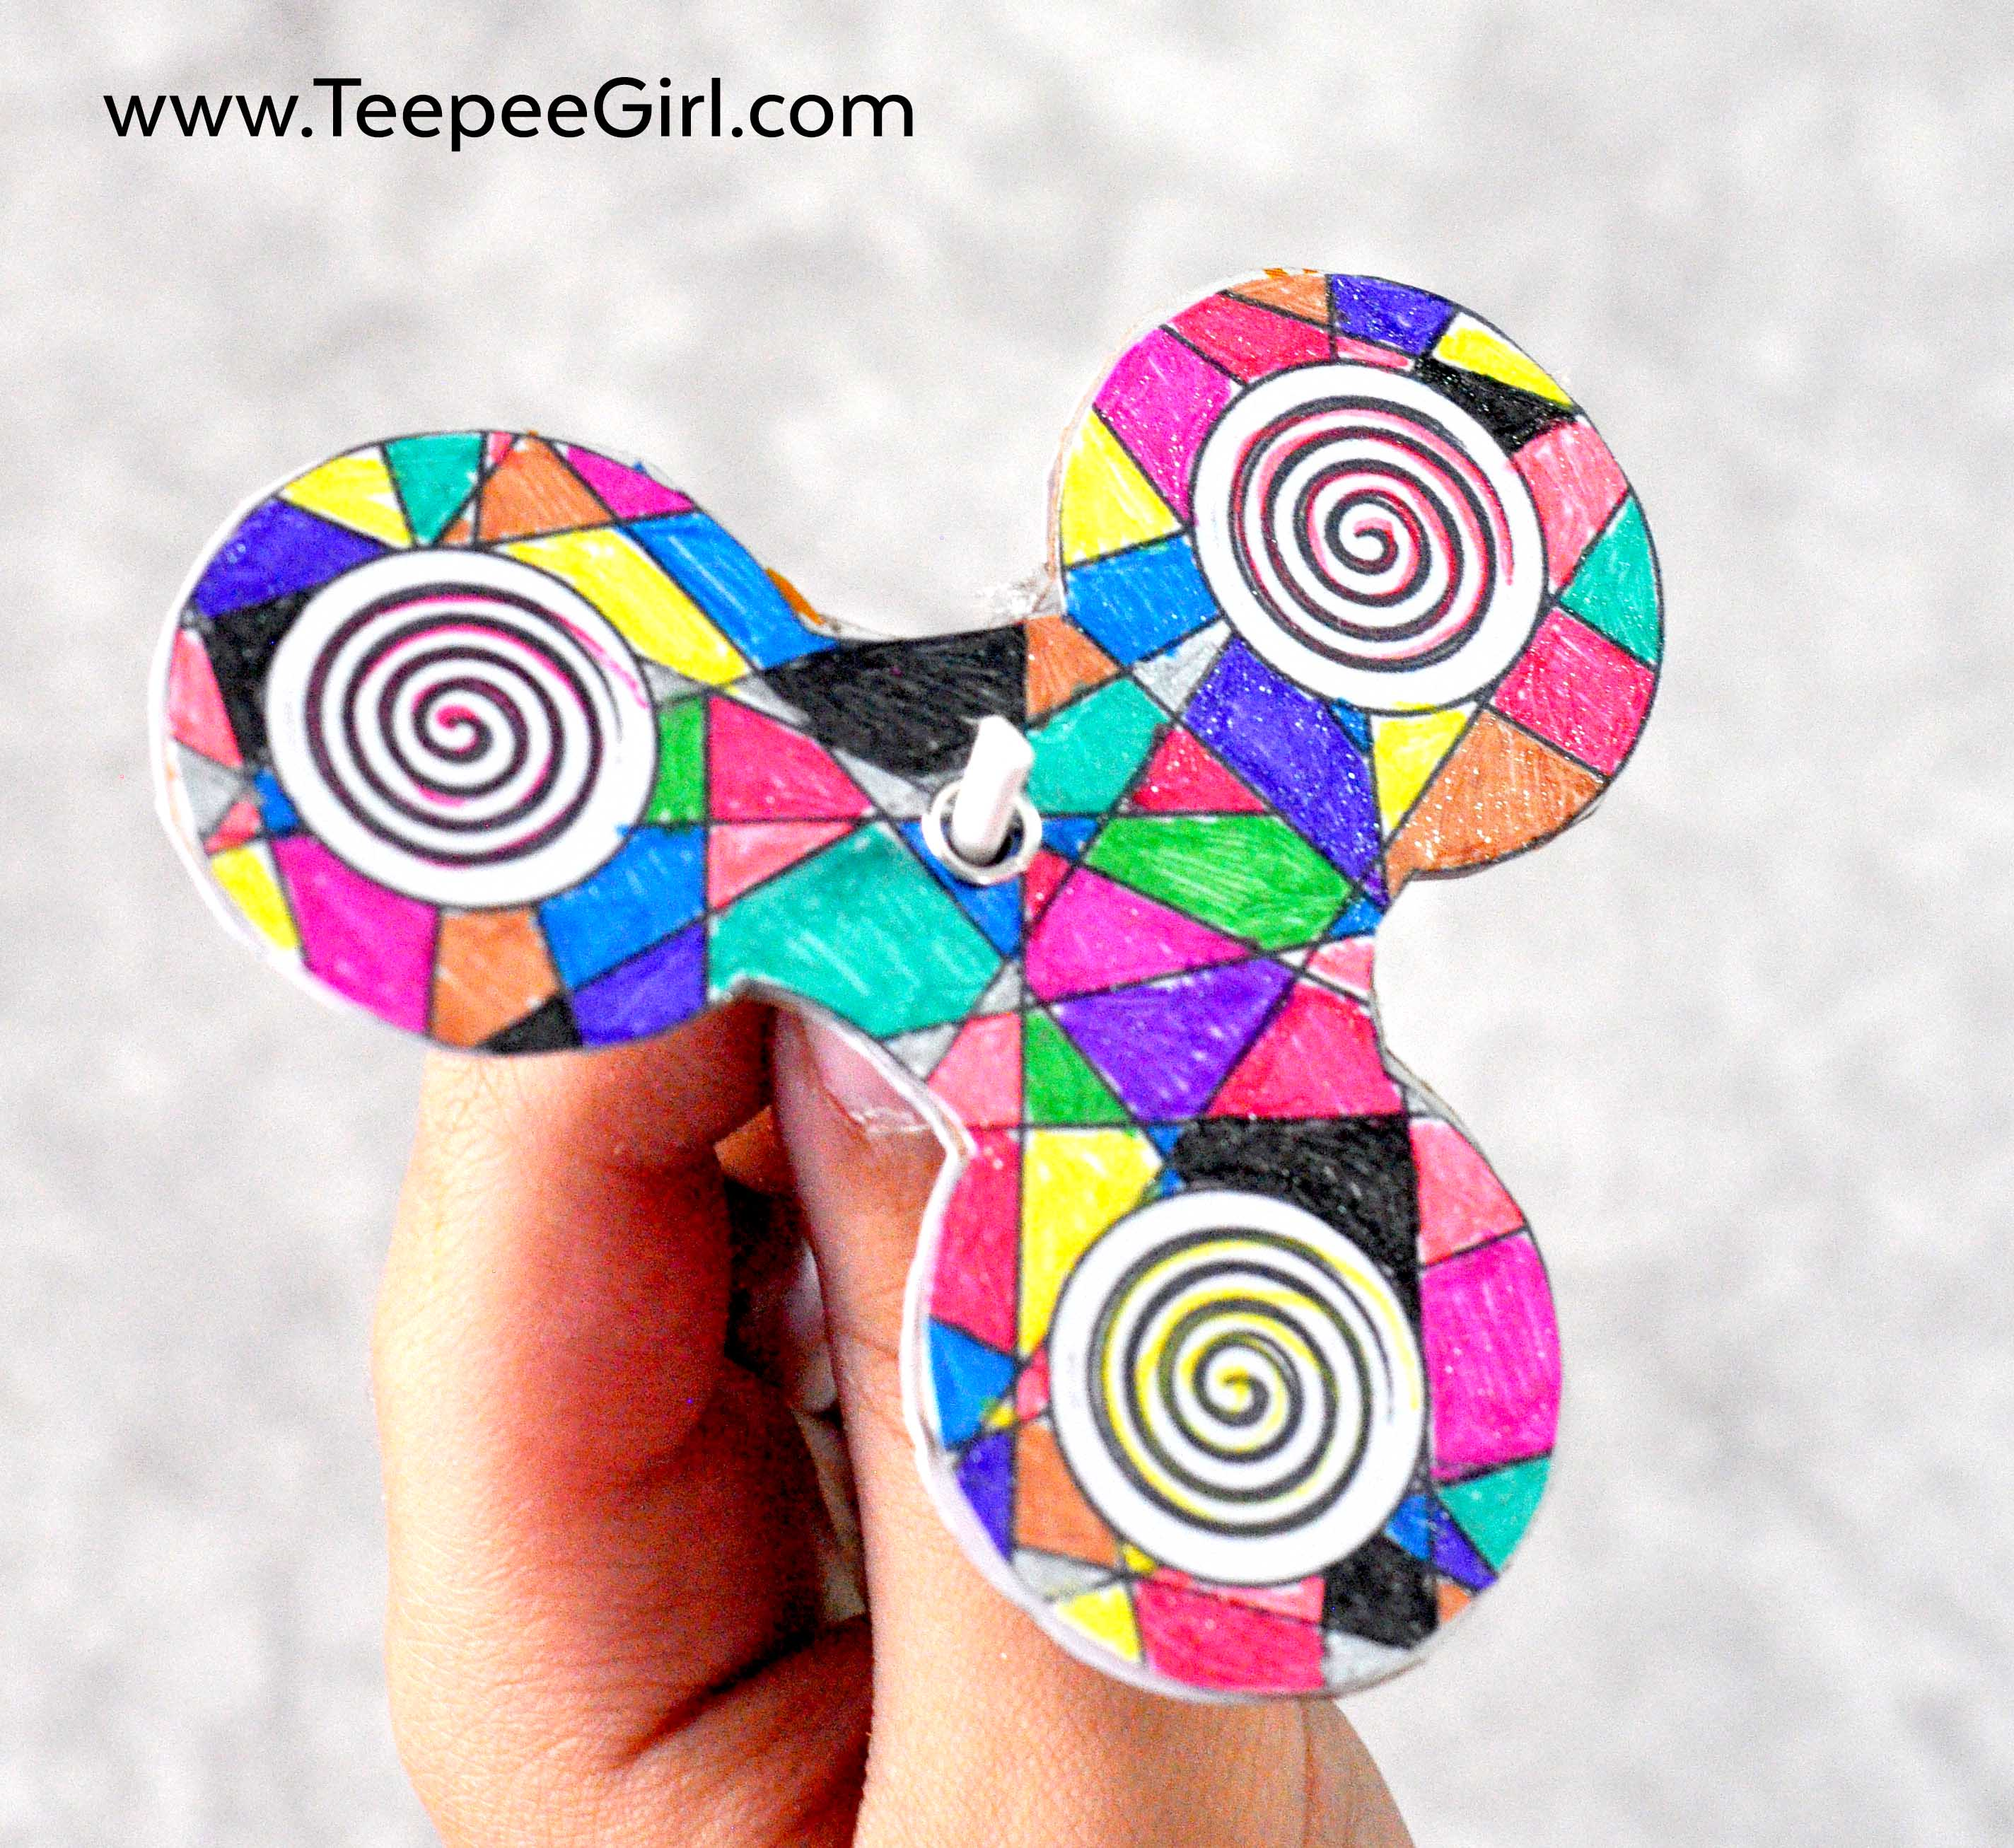 dy fidget spinner coloring 6 teepee girl